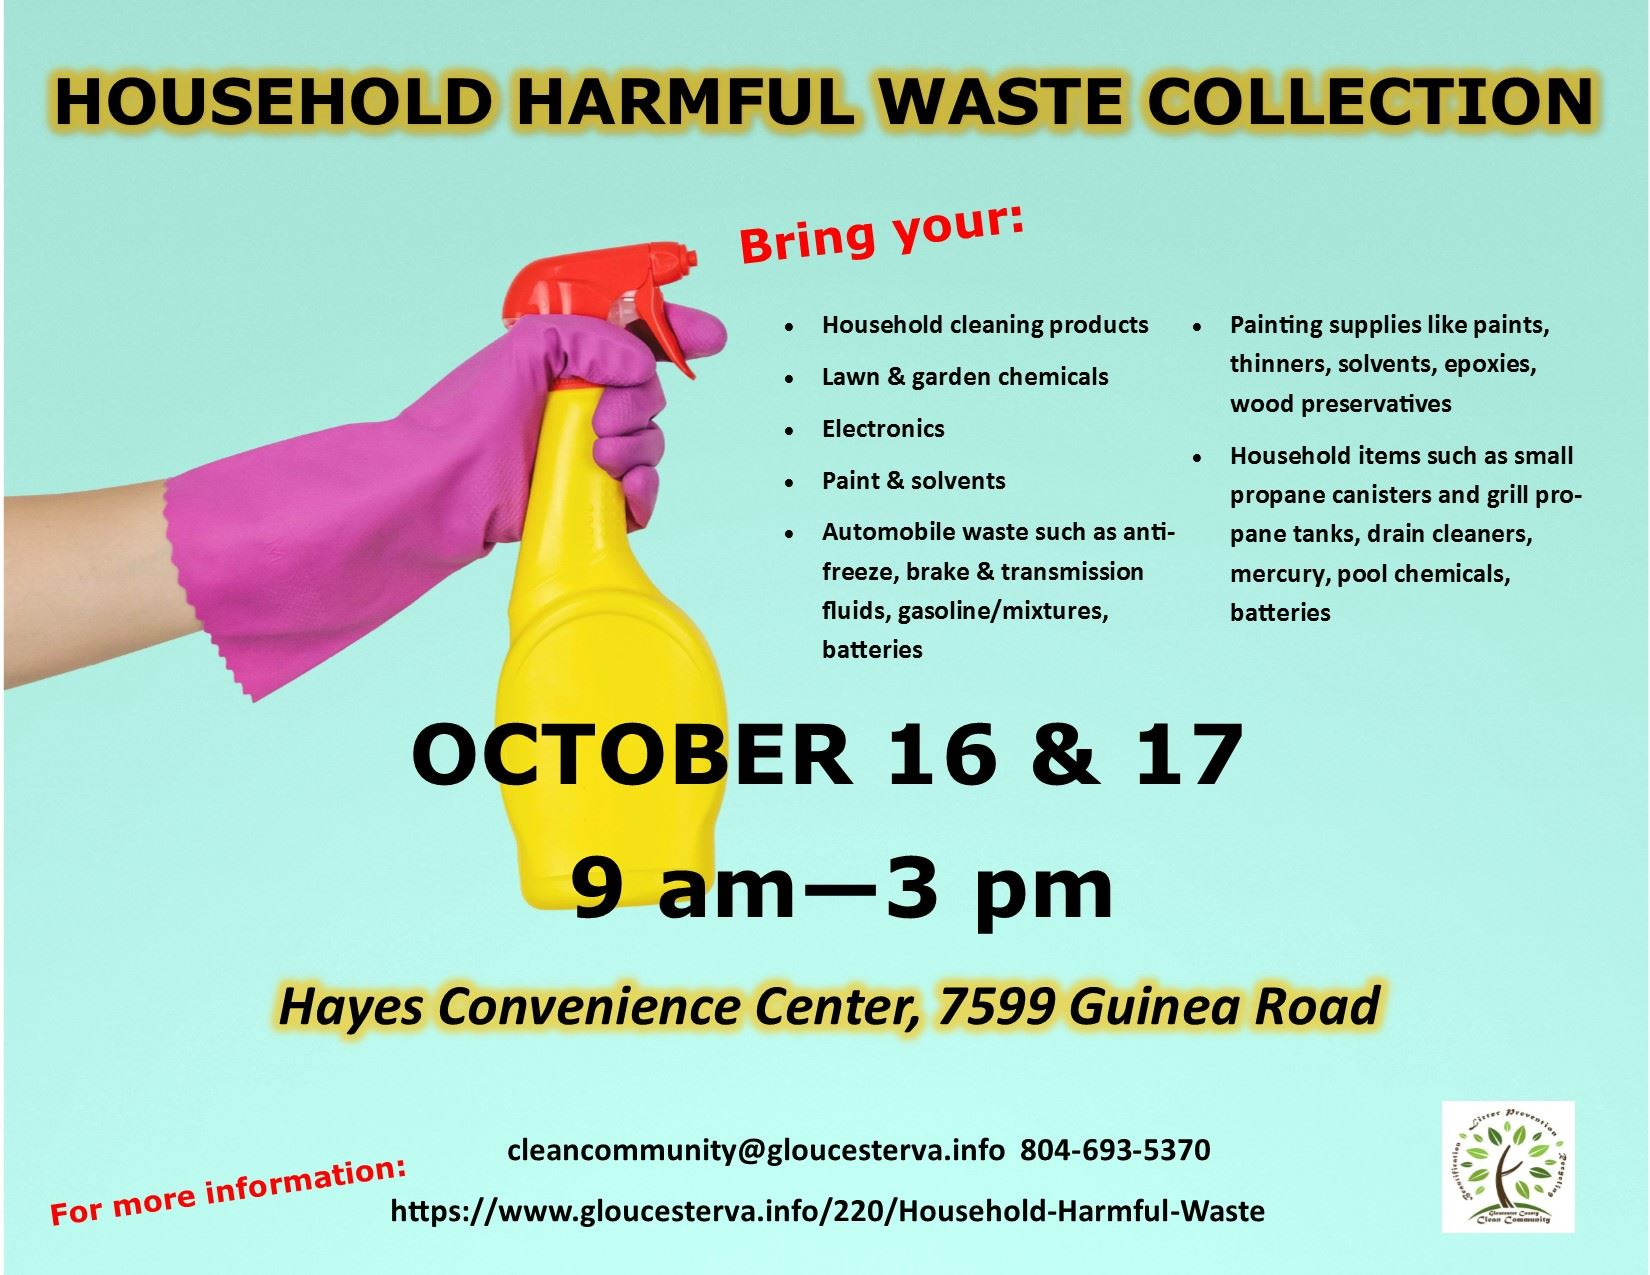 Household Harmful Waste collection Oct  16 & 17 2020, 9-3 at Hayes Rd convenience center